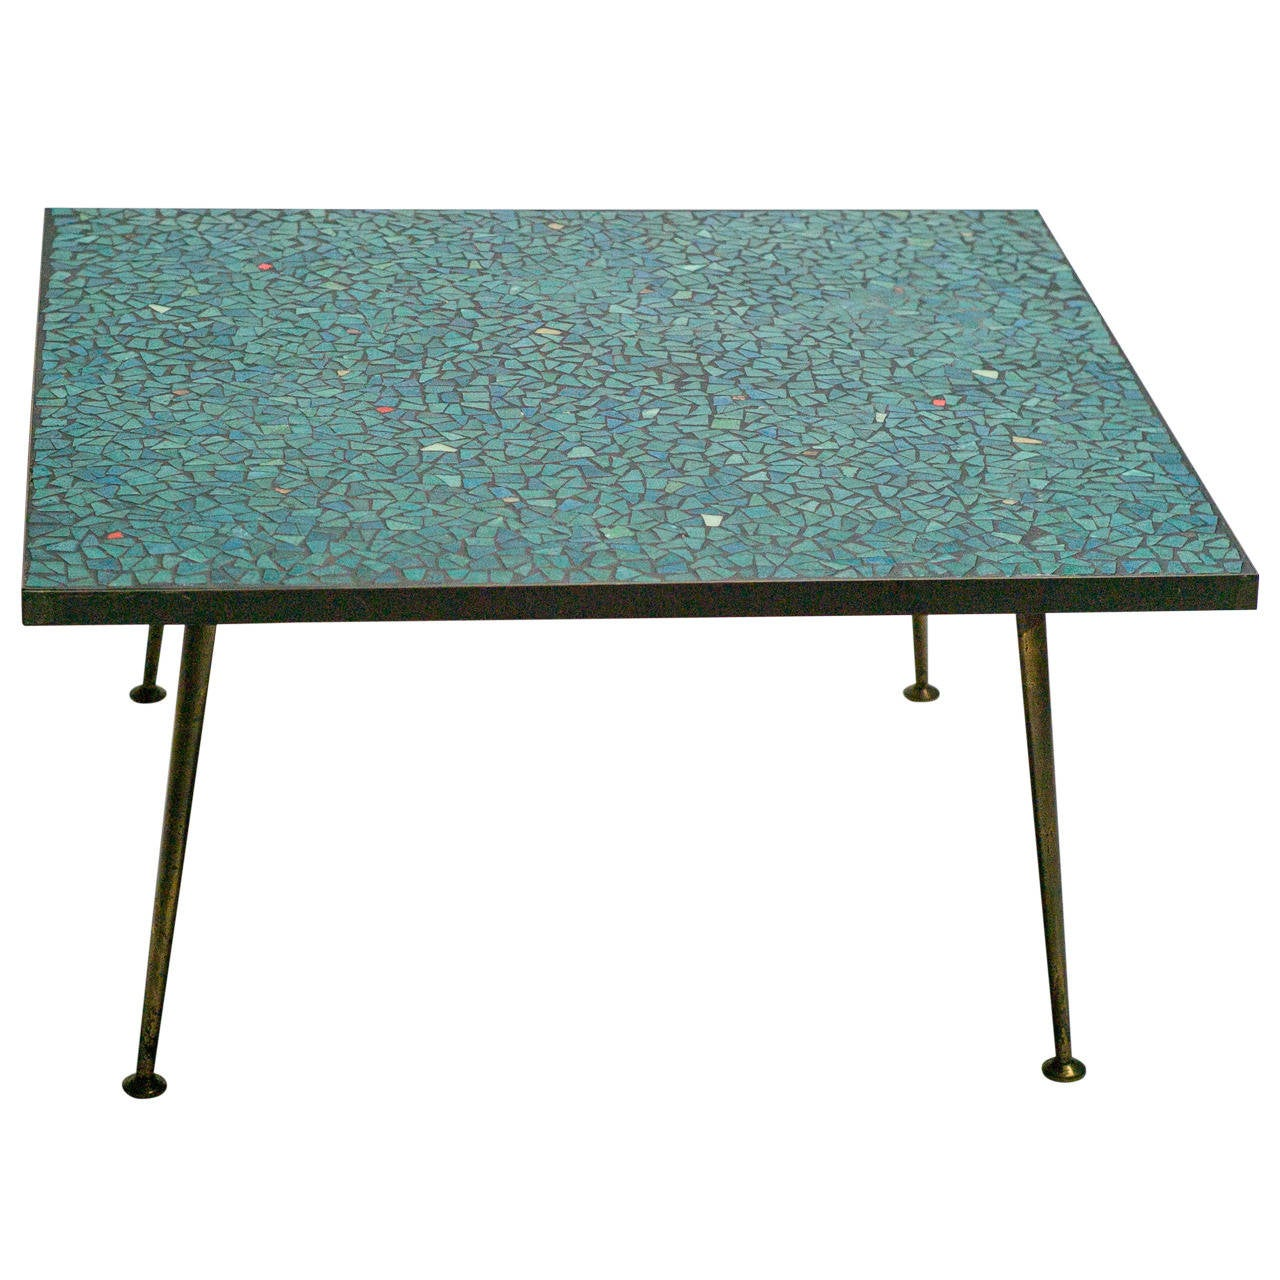 1950s Italian Mid Century Modern Mosaic Glass Tile Coffee Table With Brass Legs At 1stdibs